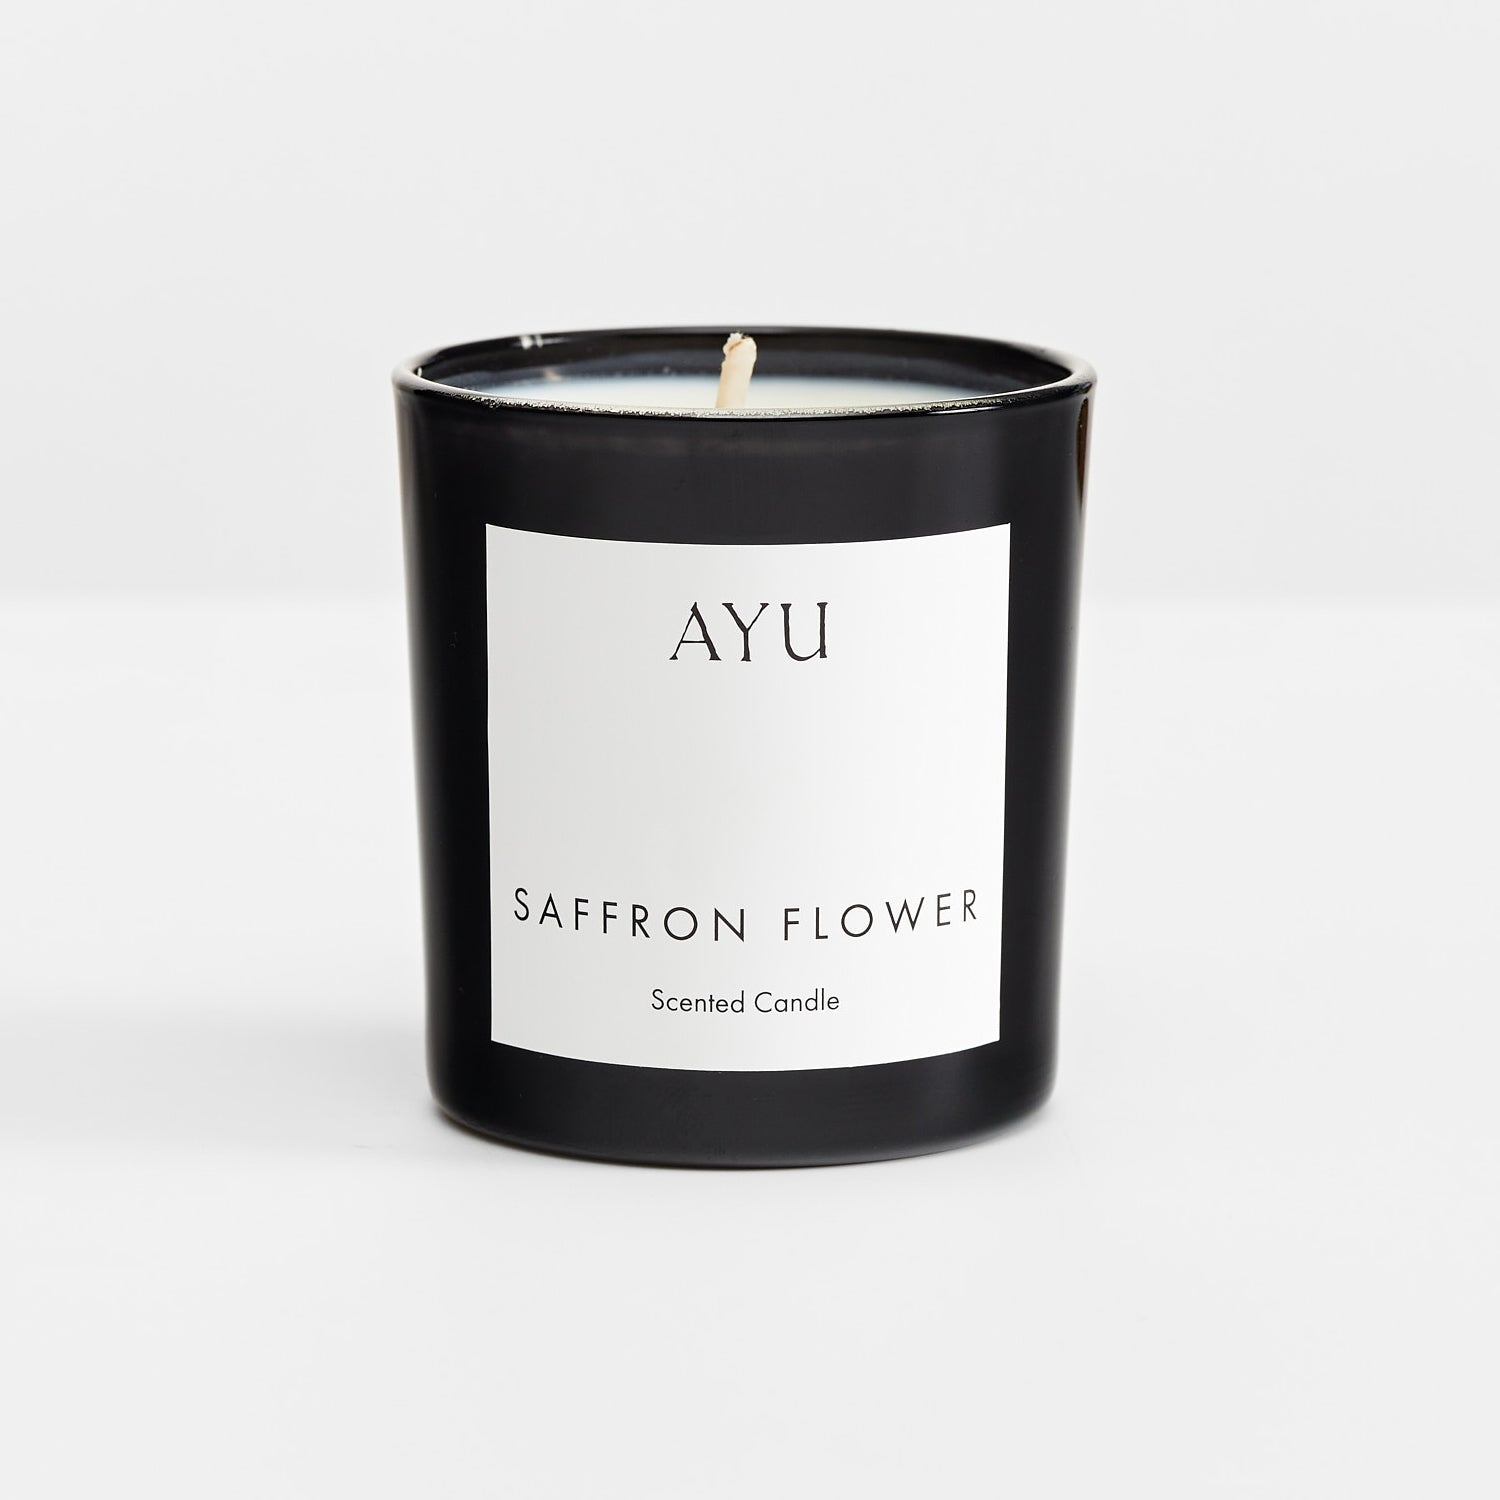 AYU Saffron Flower Scented Candle